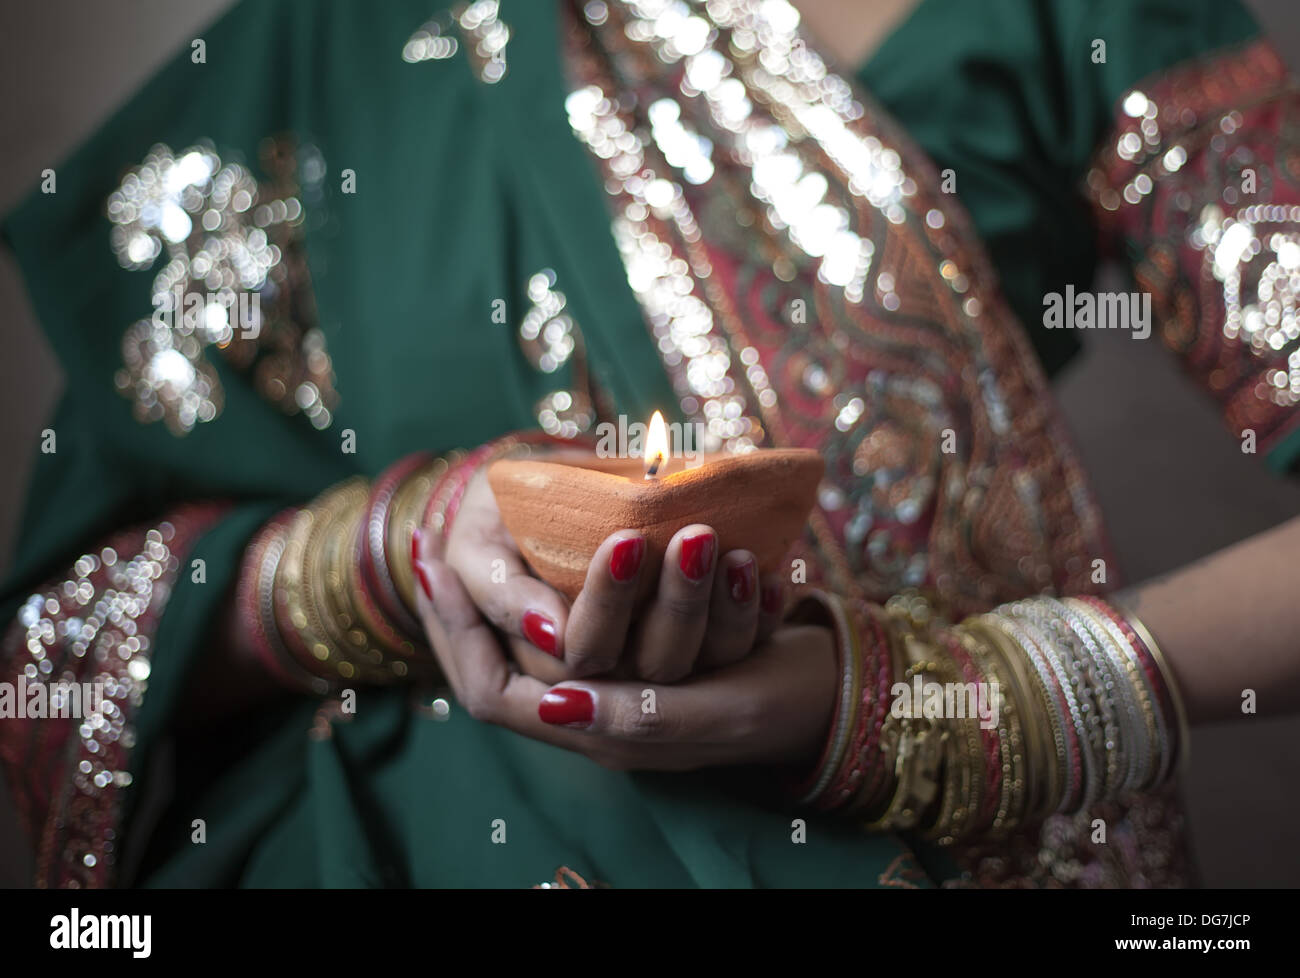 Young woman holding diwali lamp in hands - Stock Image